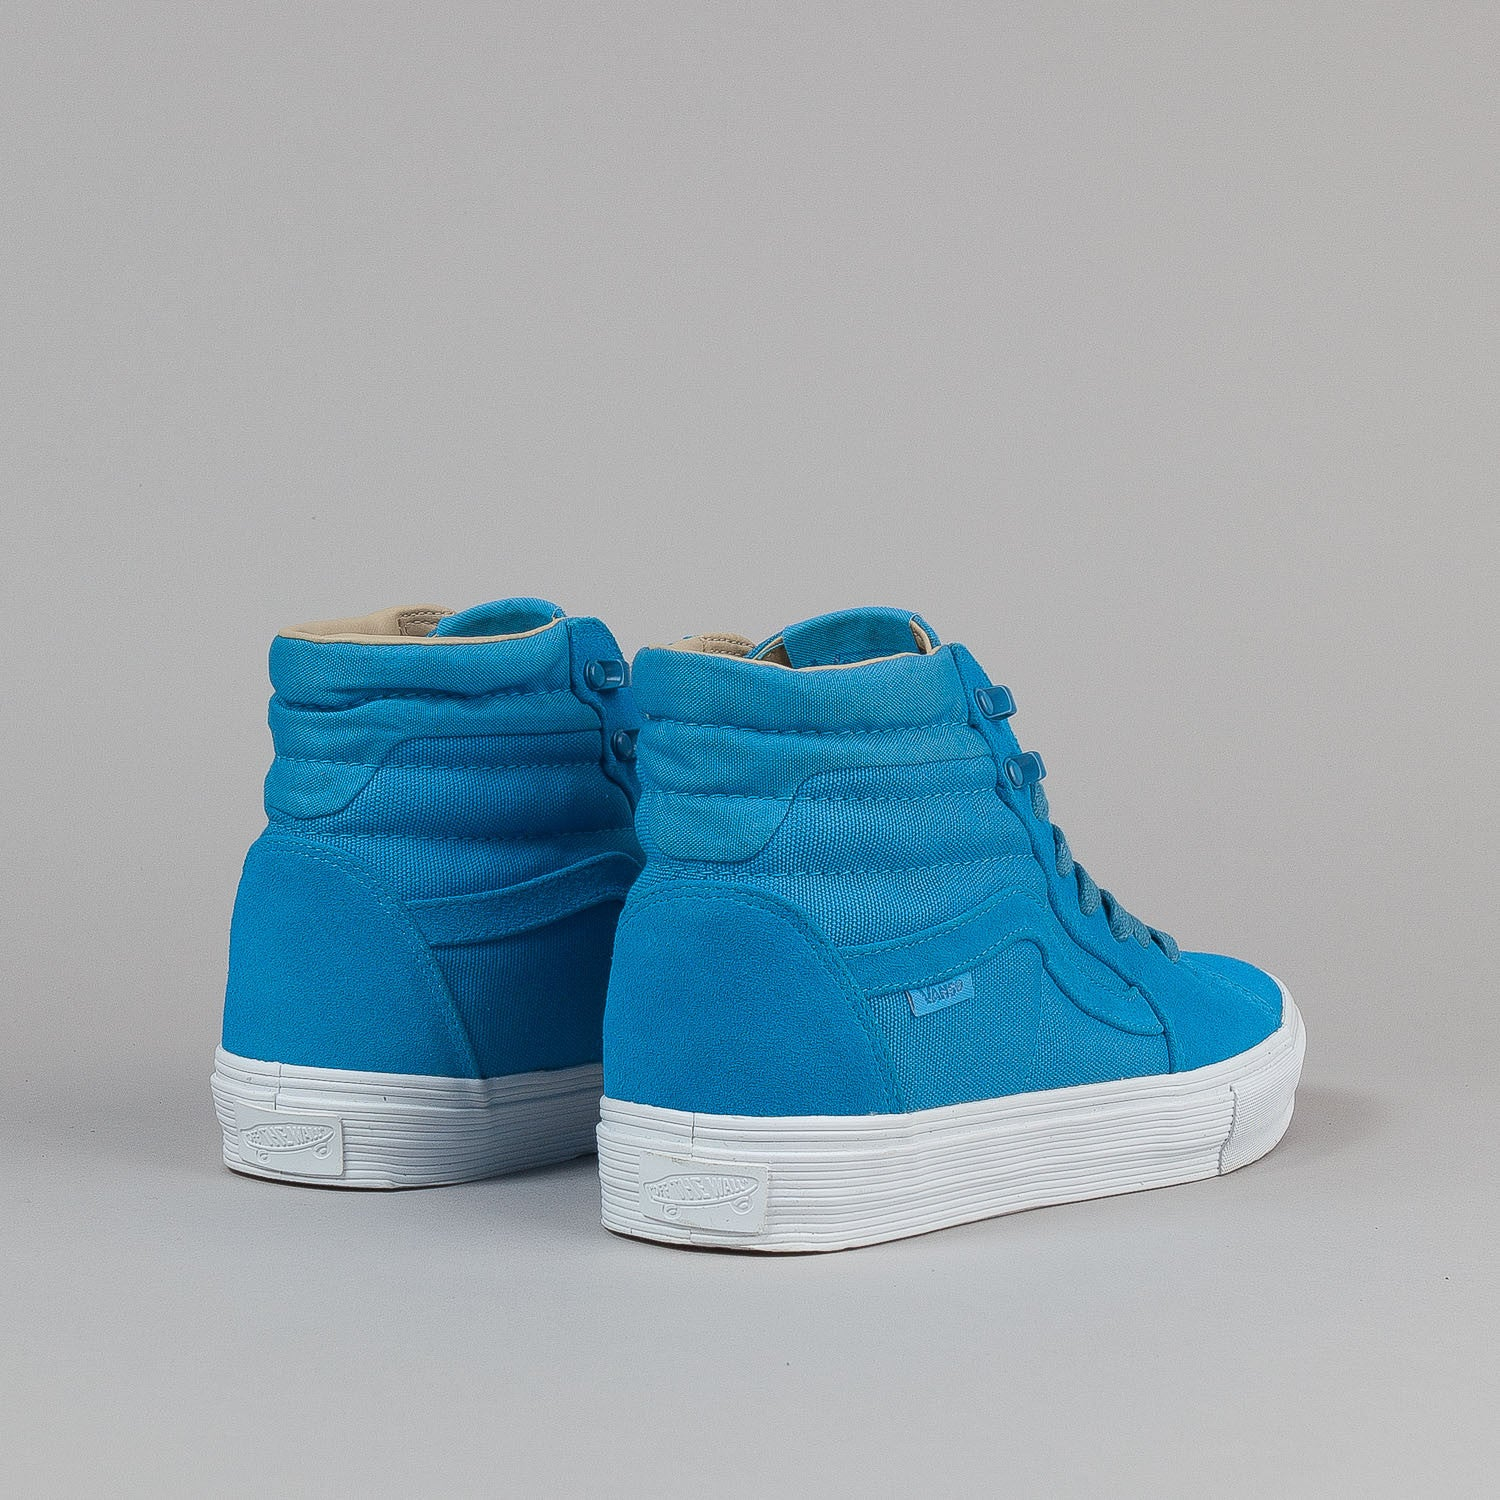 Vans Sk8-Hi CA Shoes - Swedish Blue